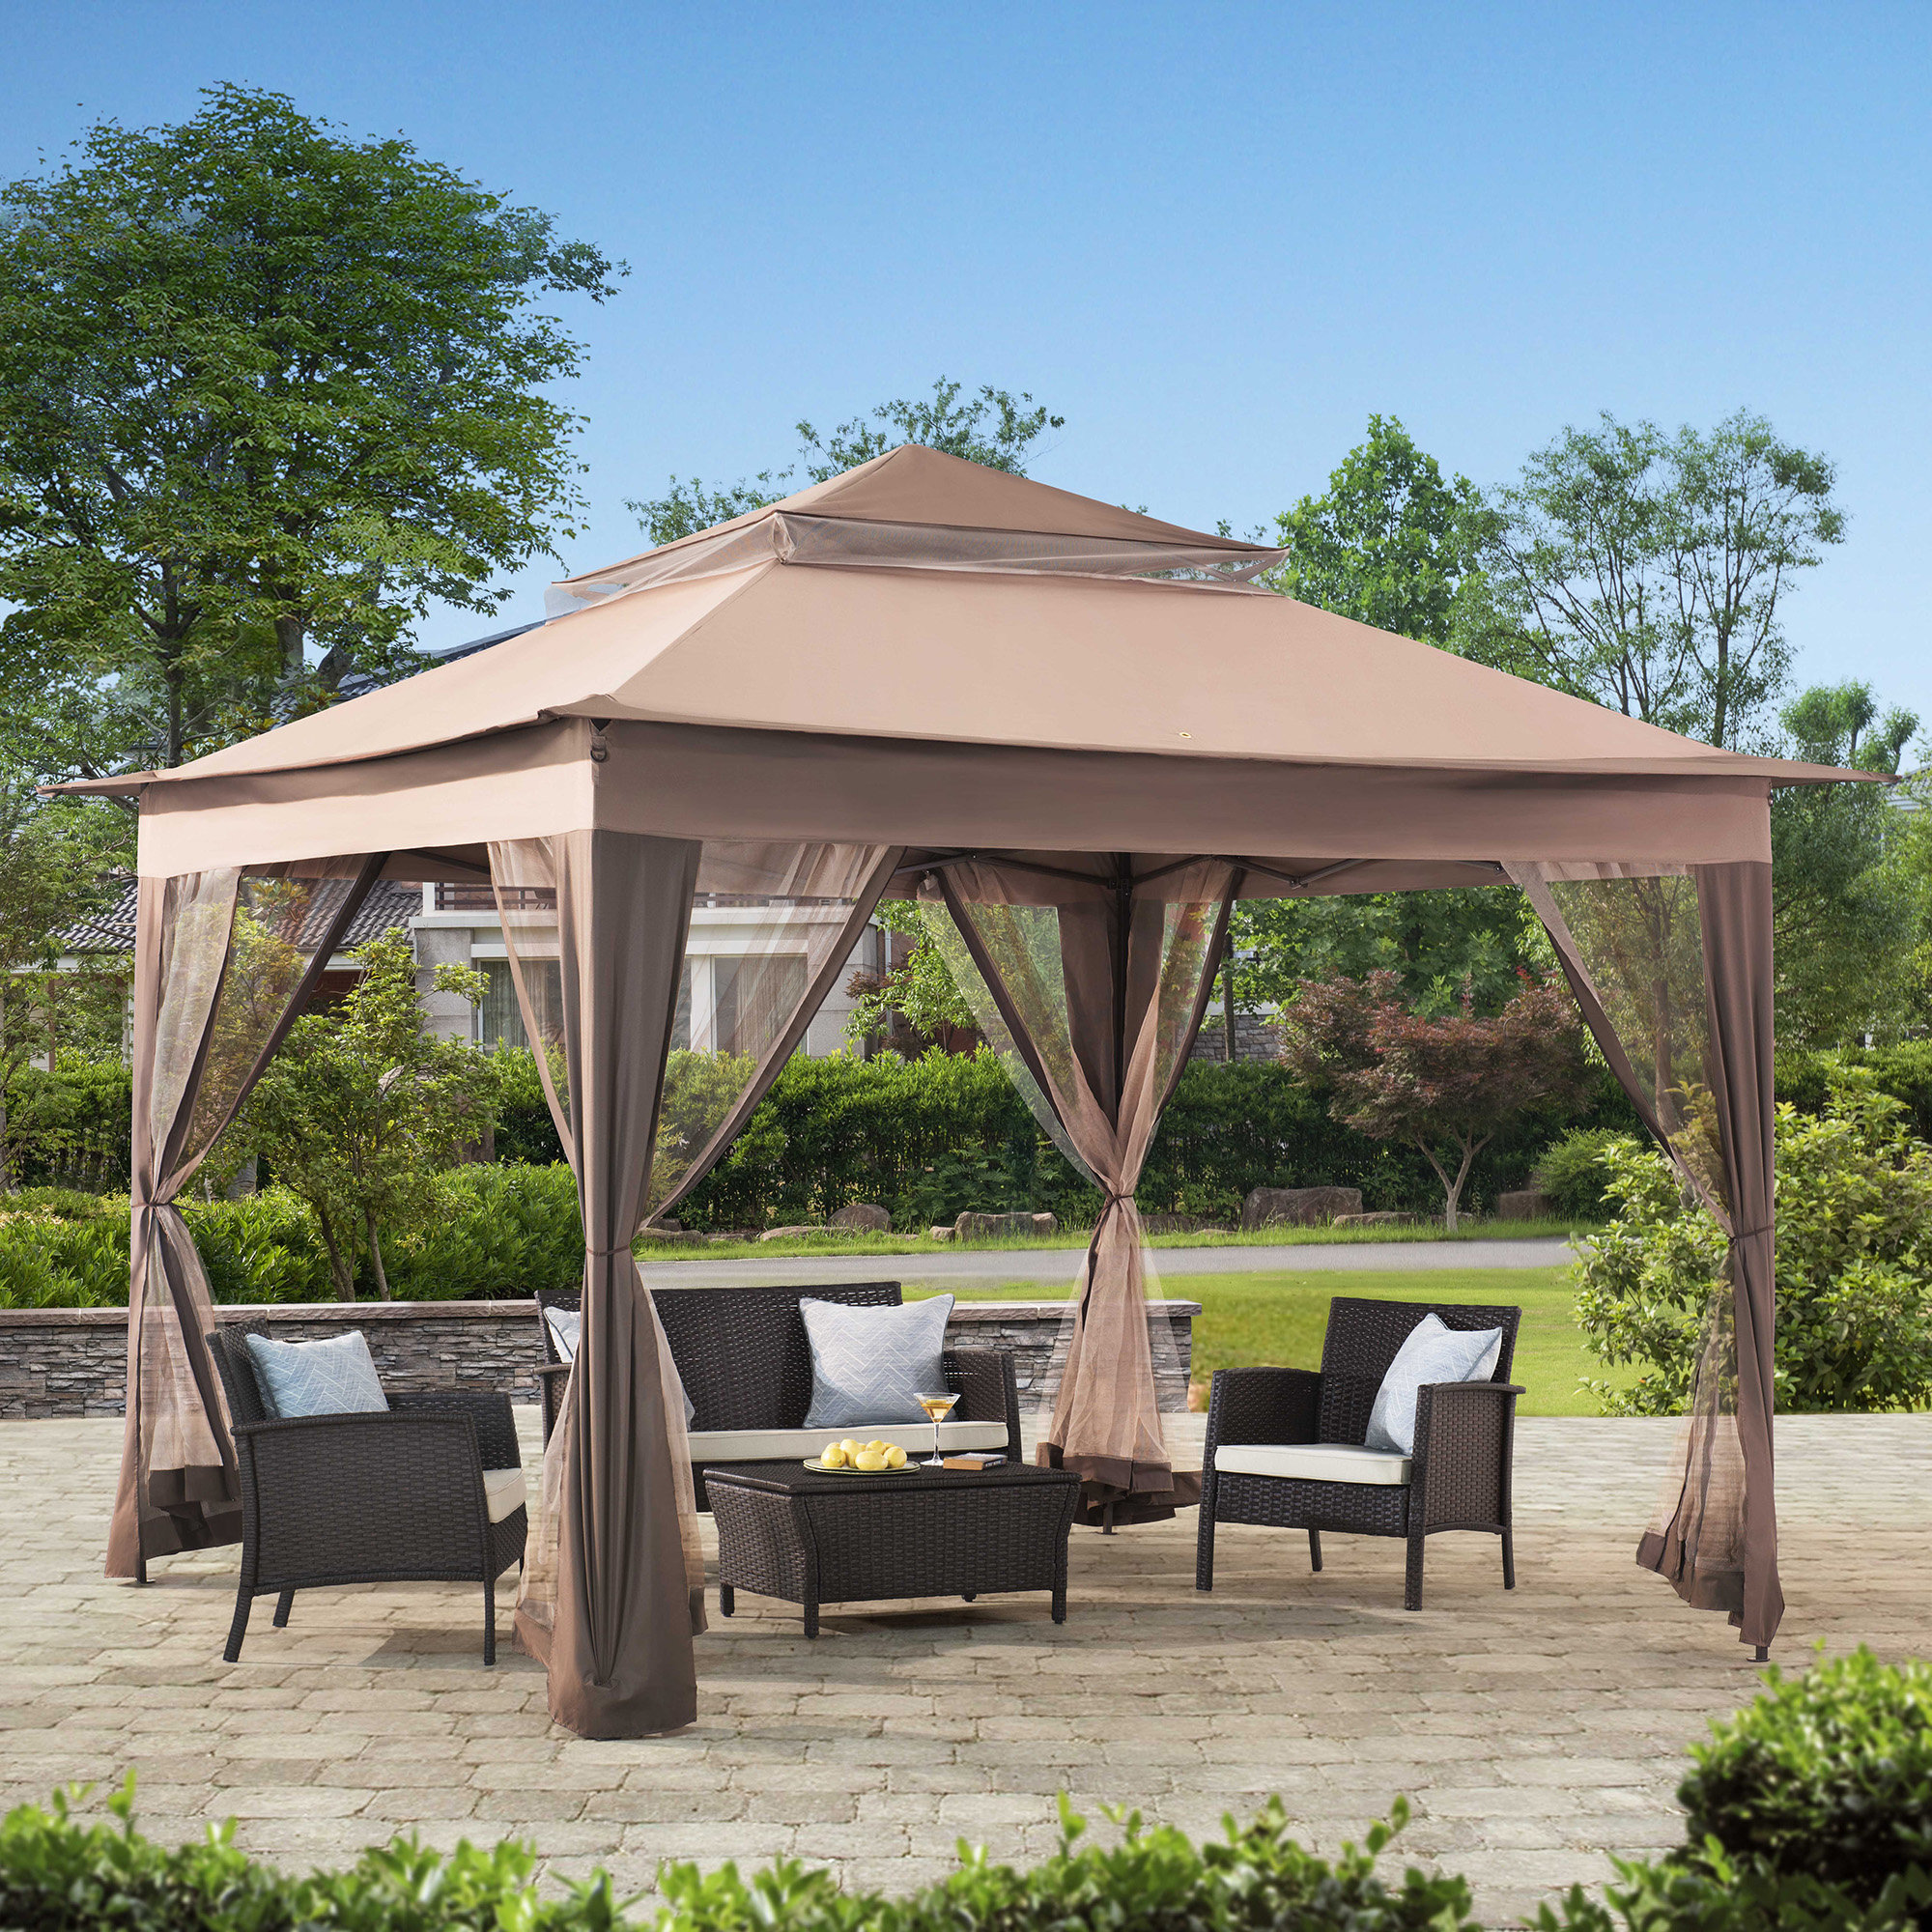 Choosing patio gazebo for your outdoor activities